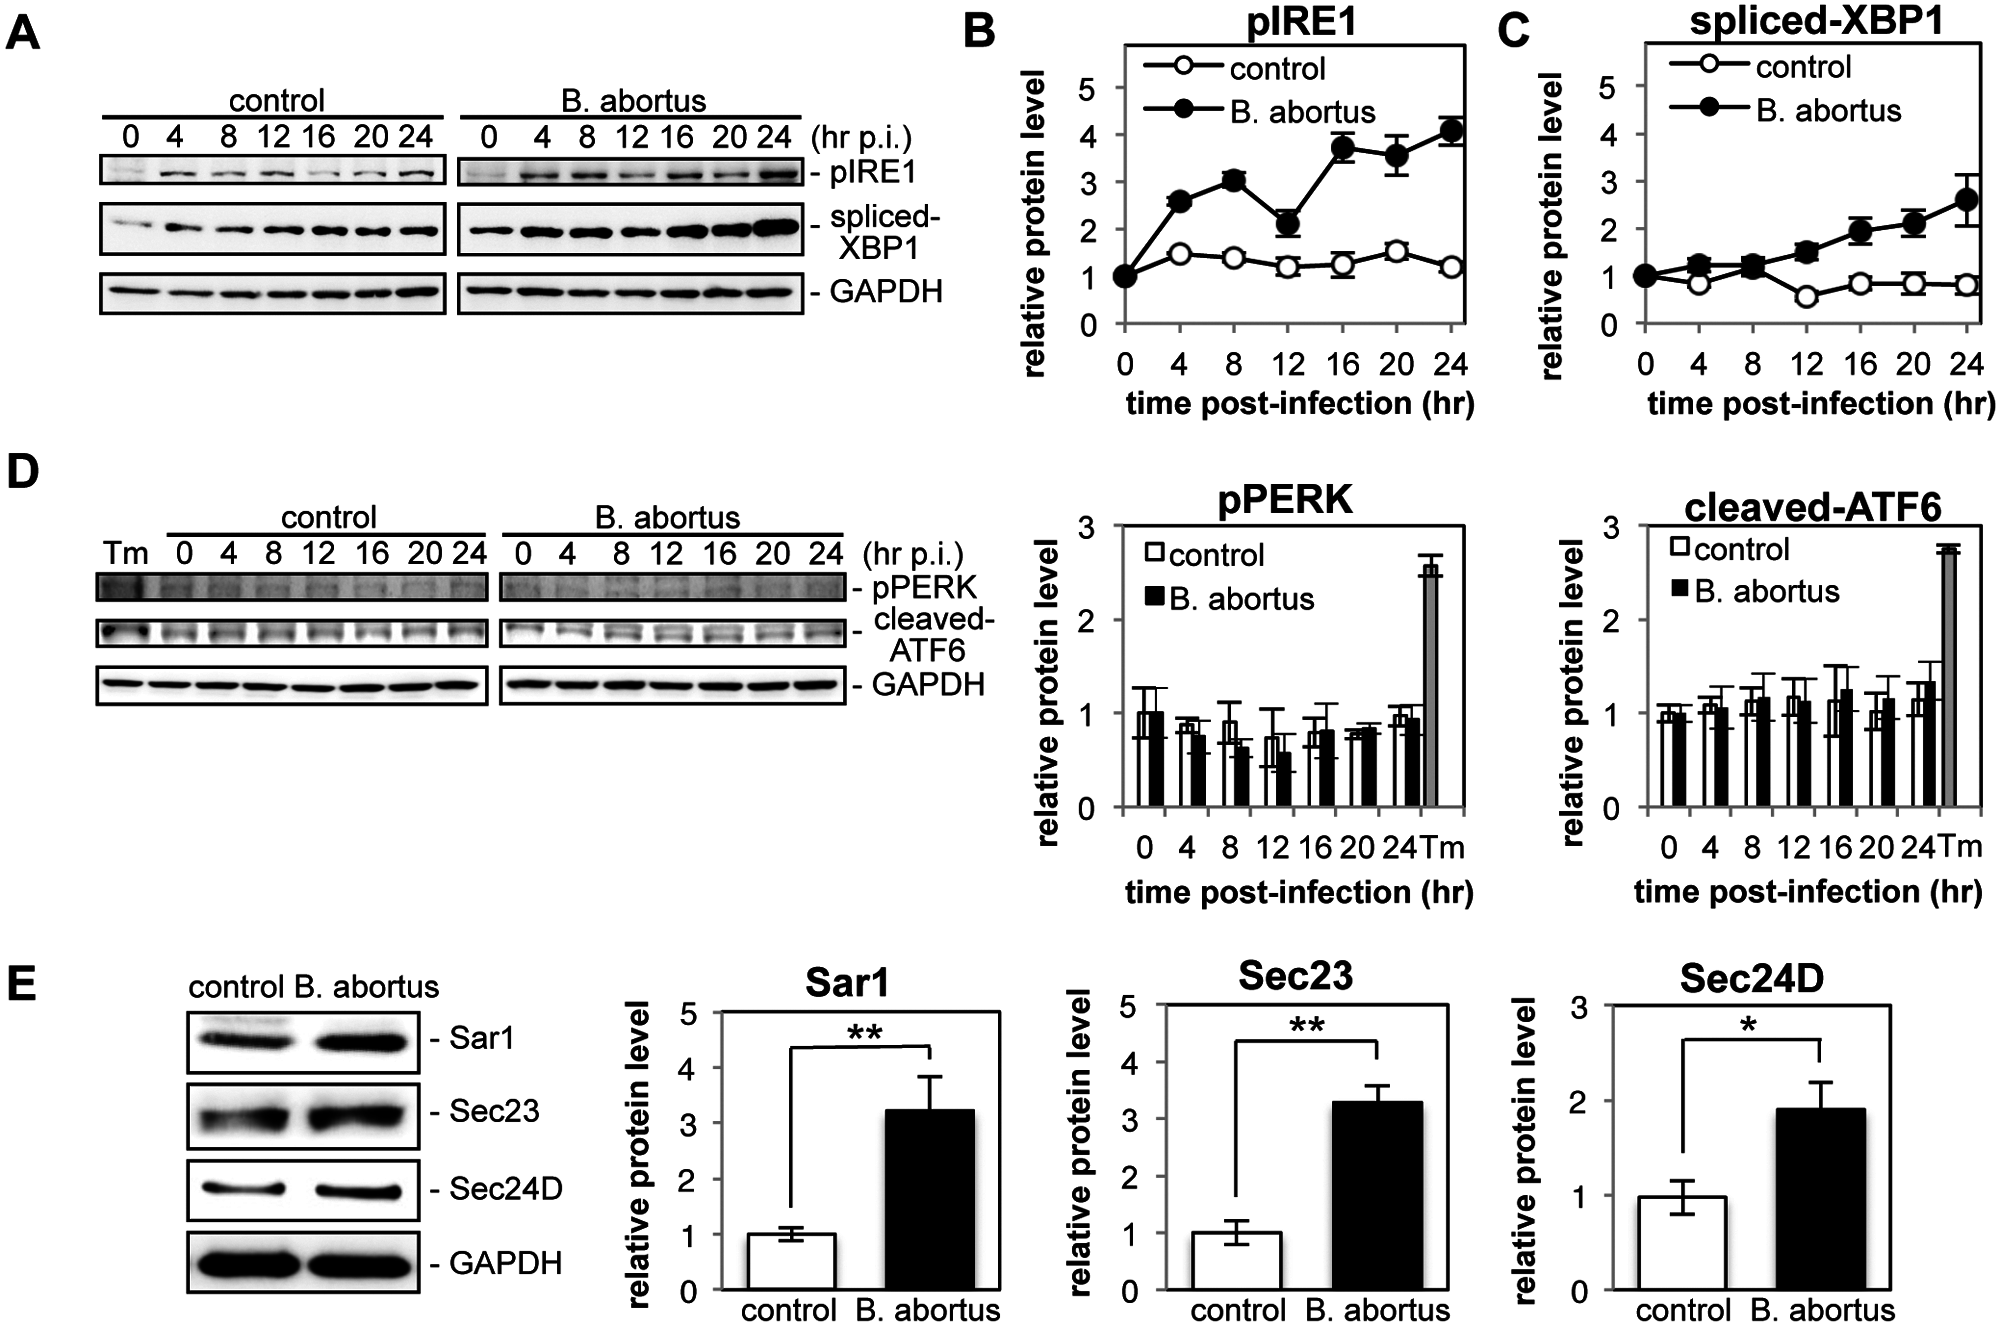 Infection with <i>Brucella abortus</i> activates the IRE1 pathway of the UPR and leads to the upregulation of the COPII vesicle components Sar1, Sec23 and Sec24D.